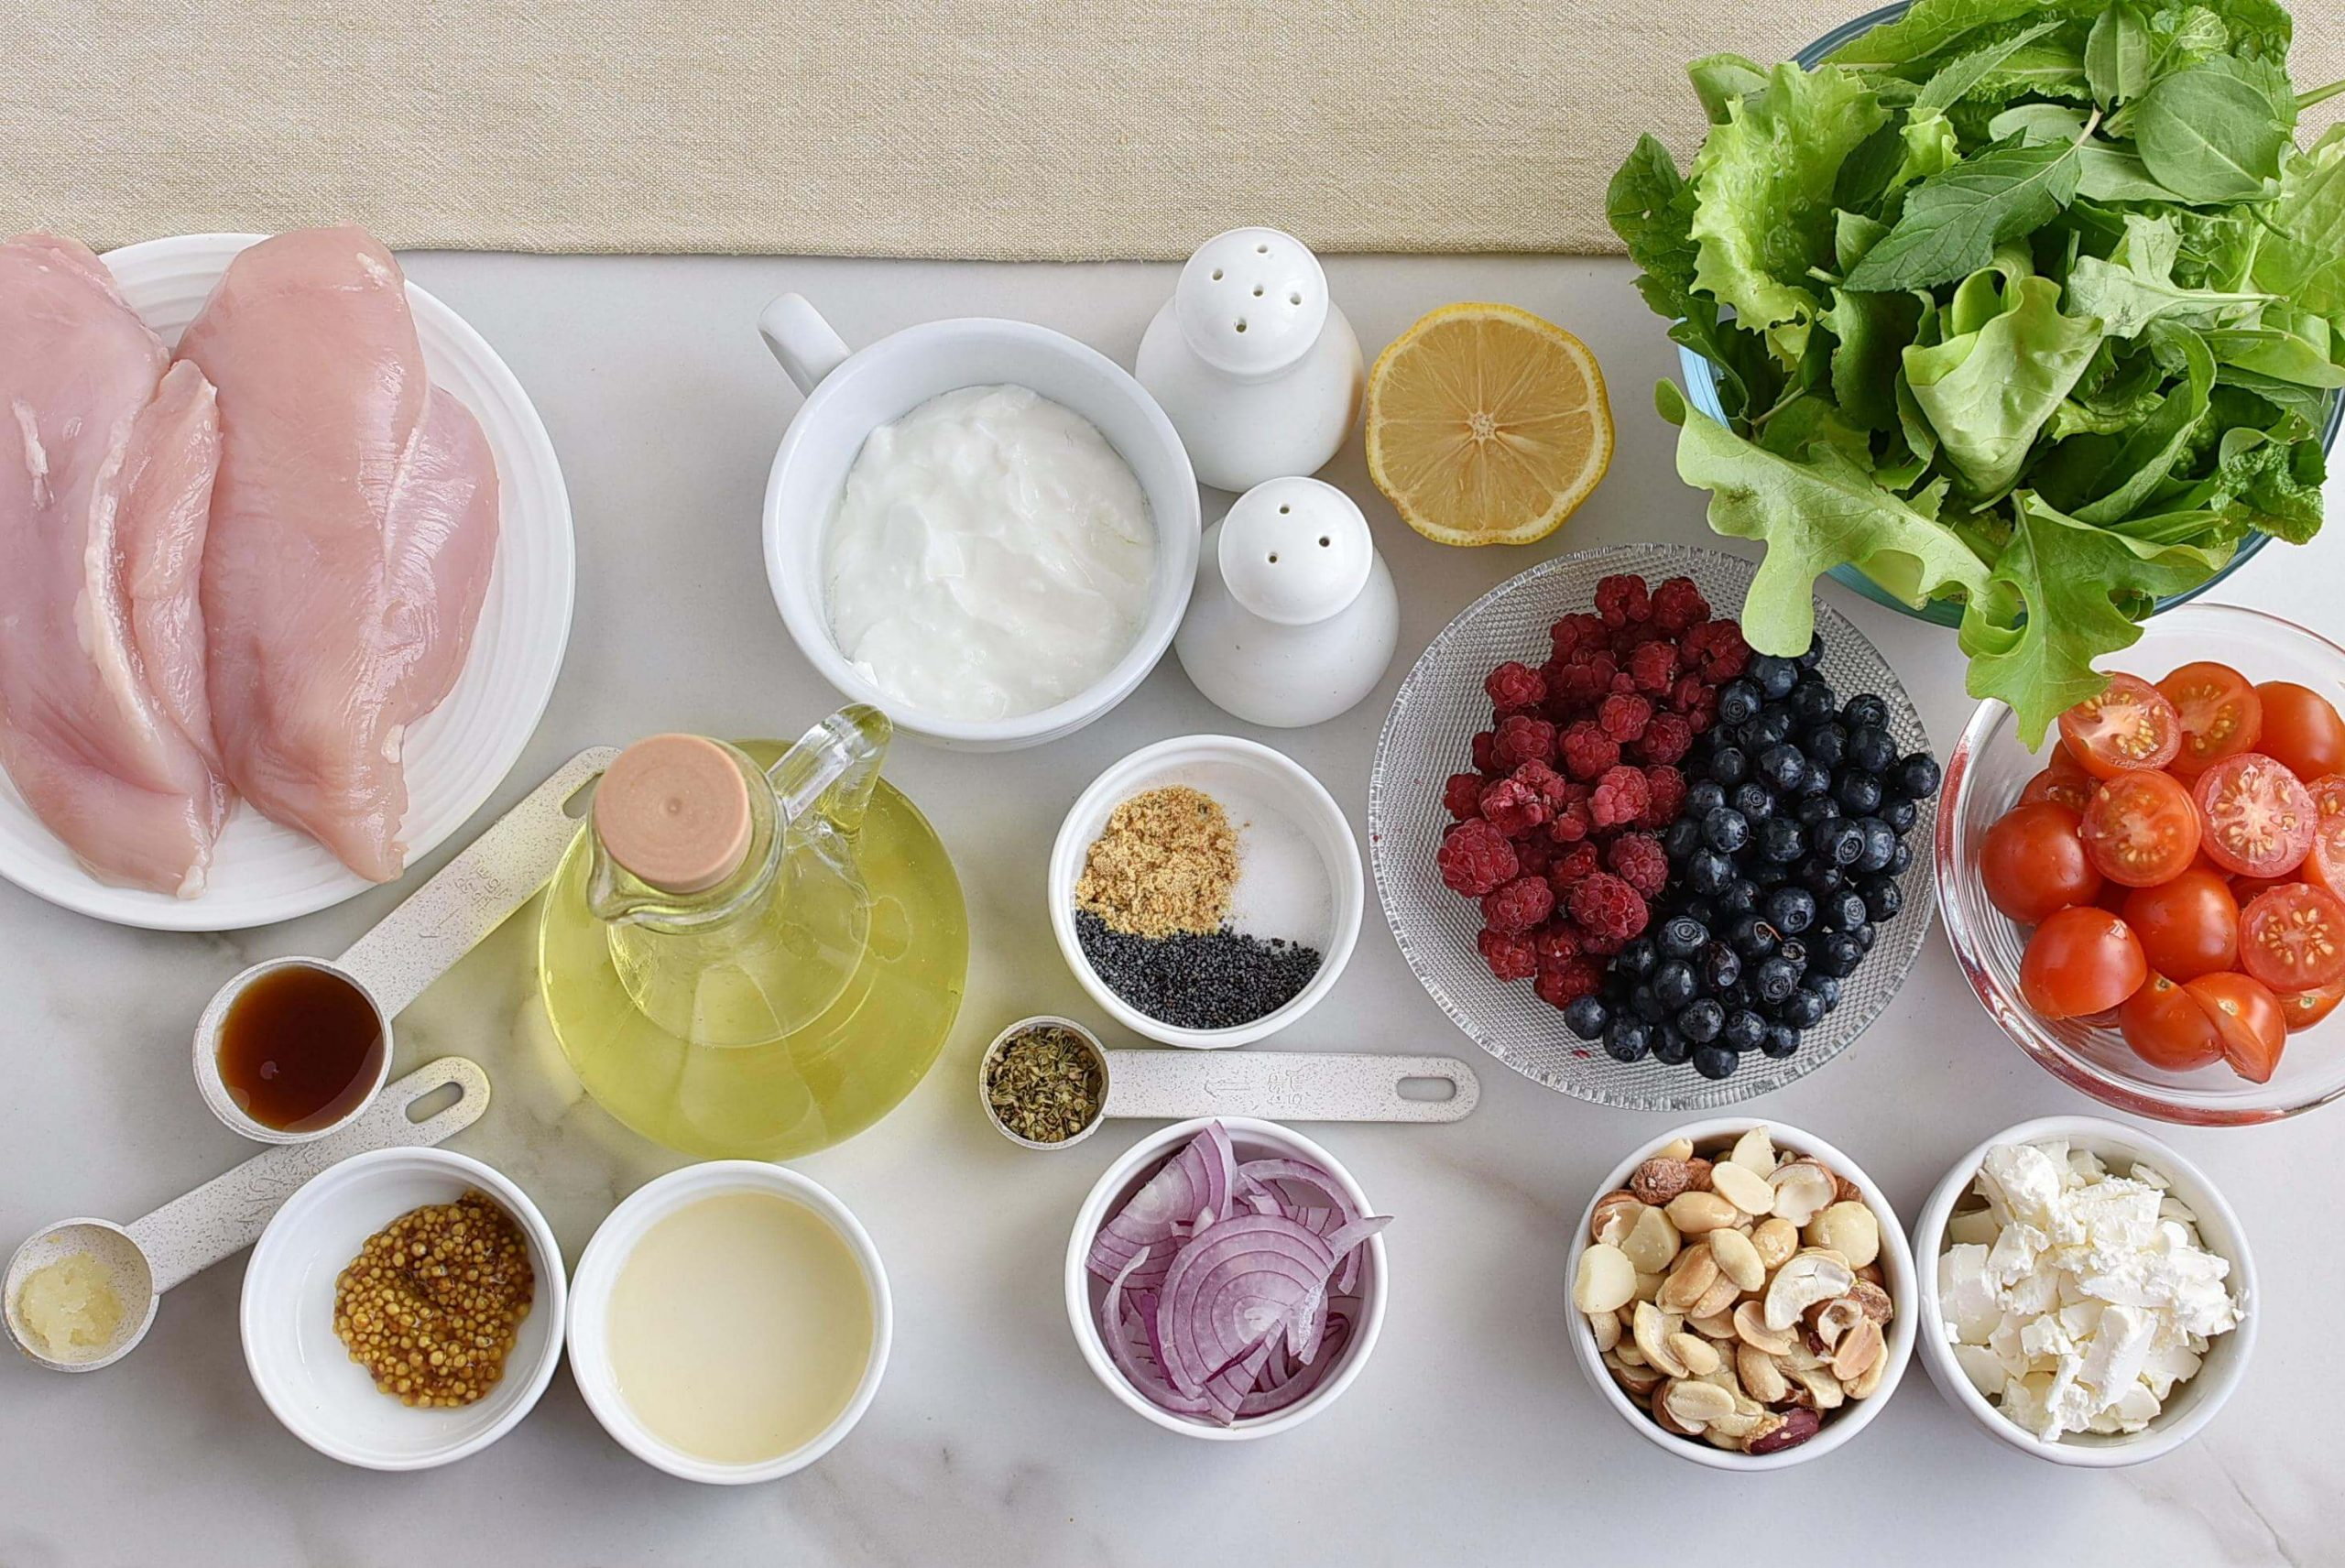 Ingridiens for Grilled Chicken Salad with Raspberry